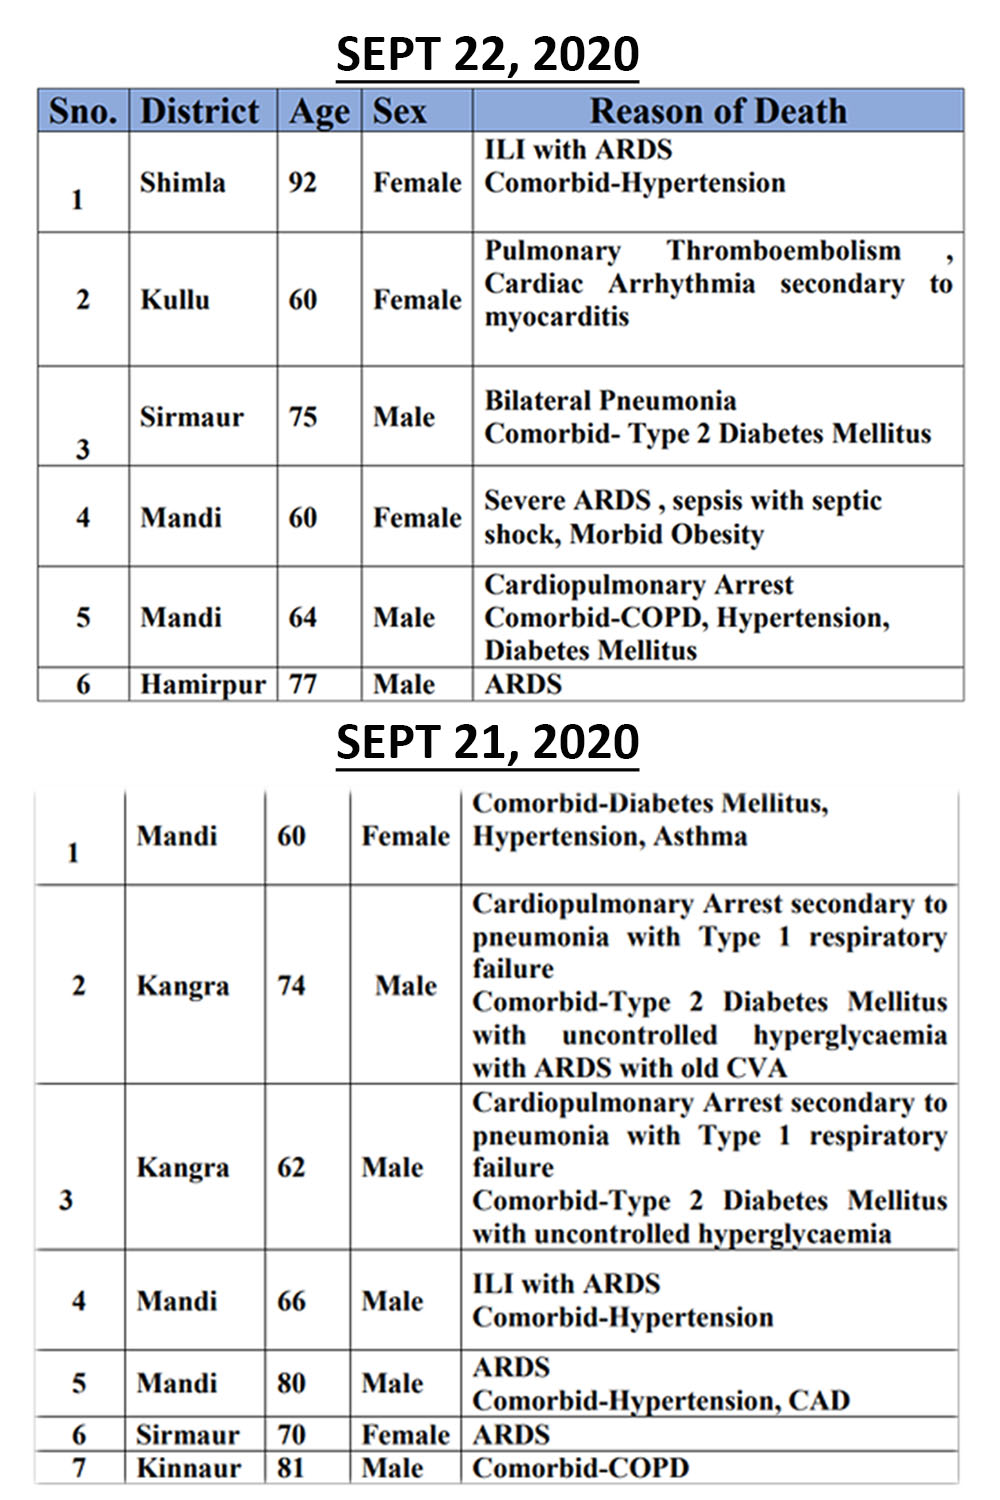 details of COVID-19 deaths in Himachal pradesh